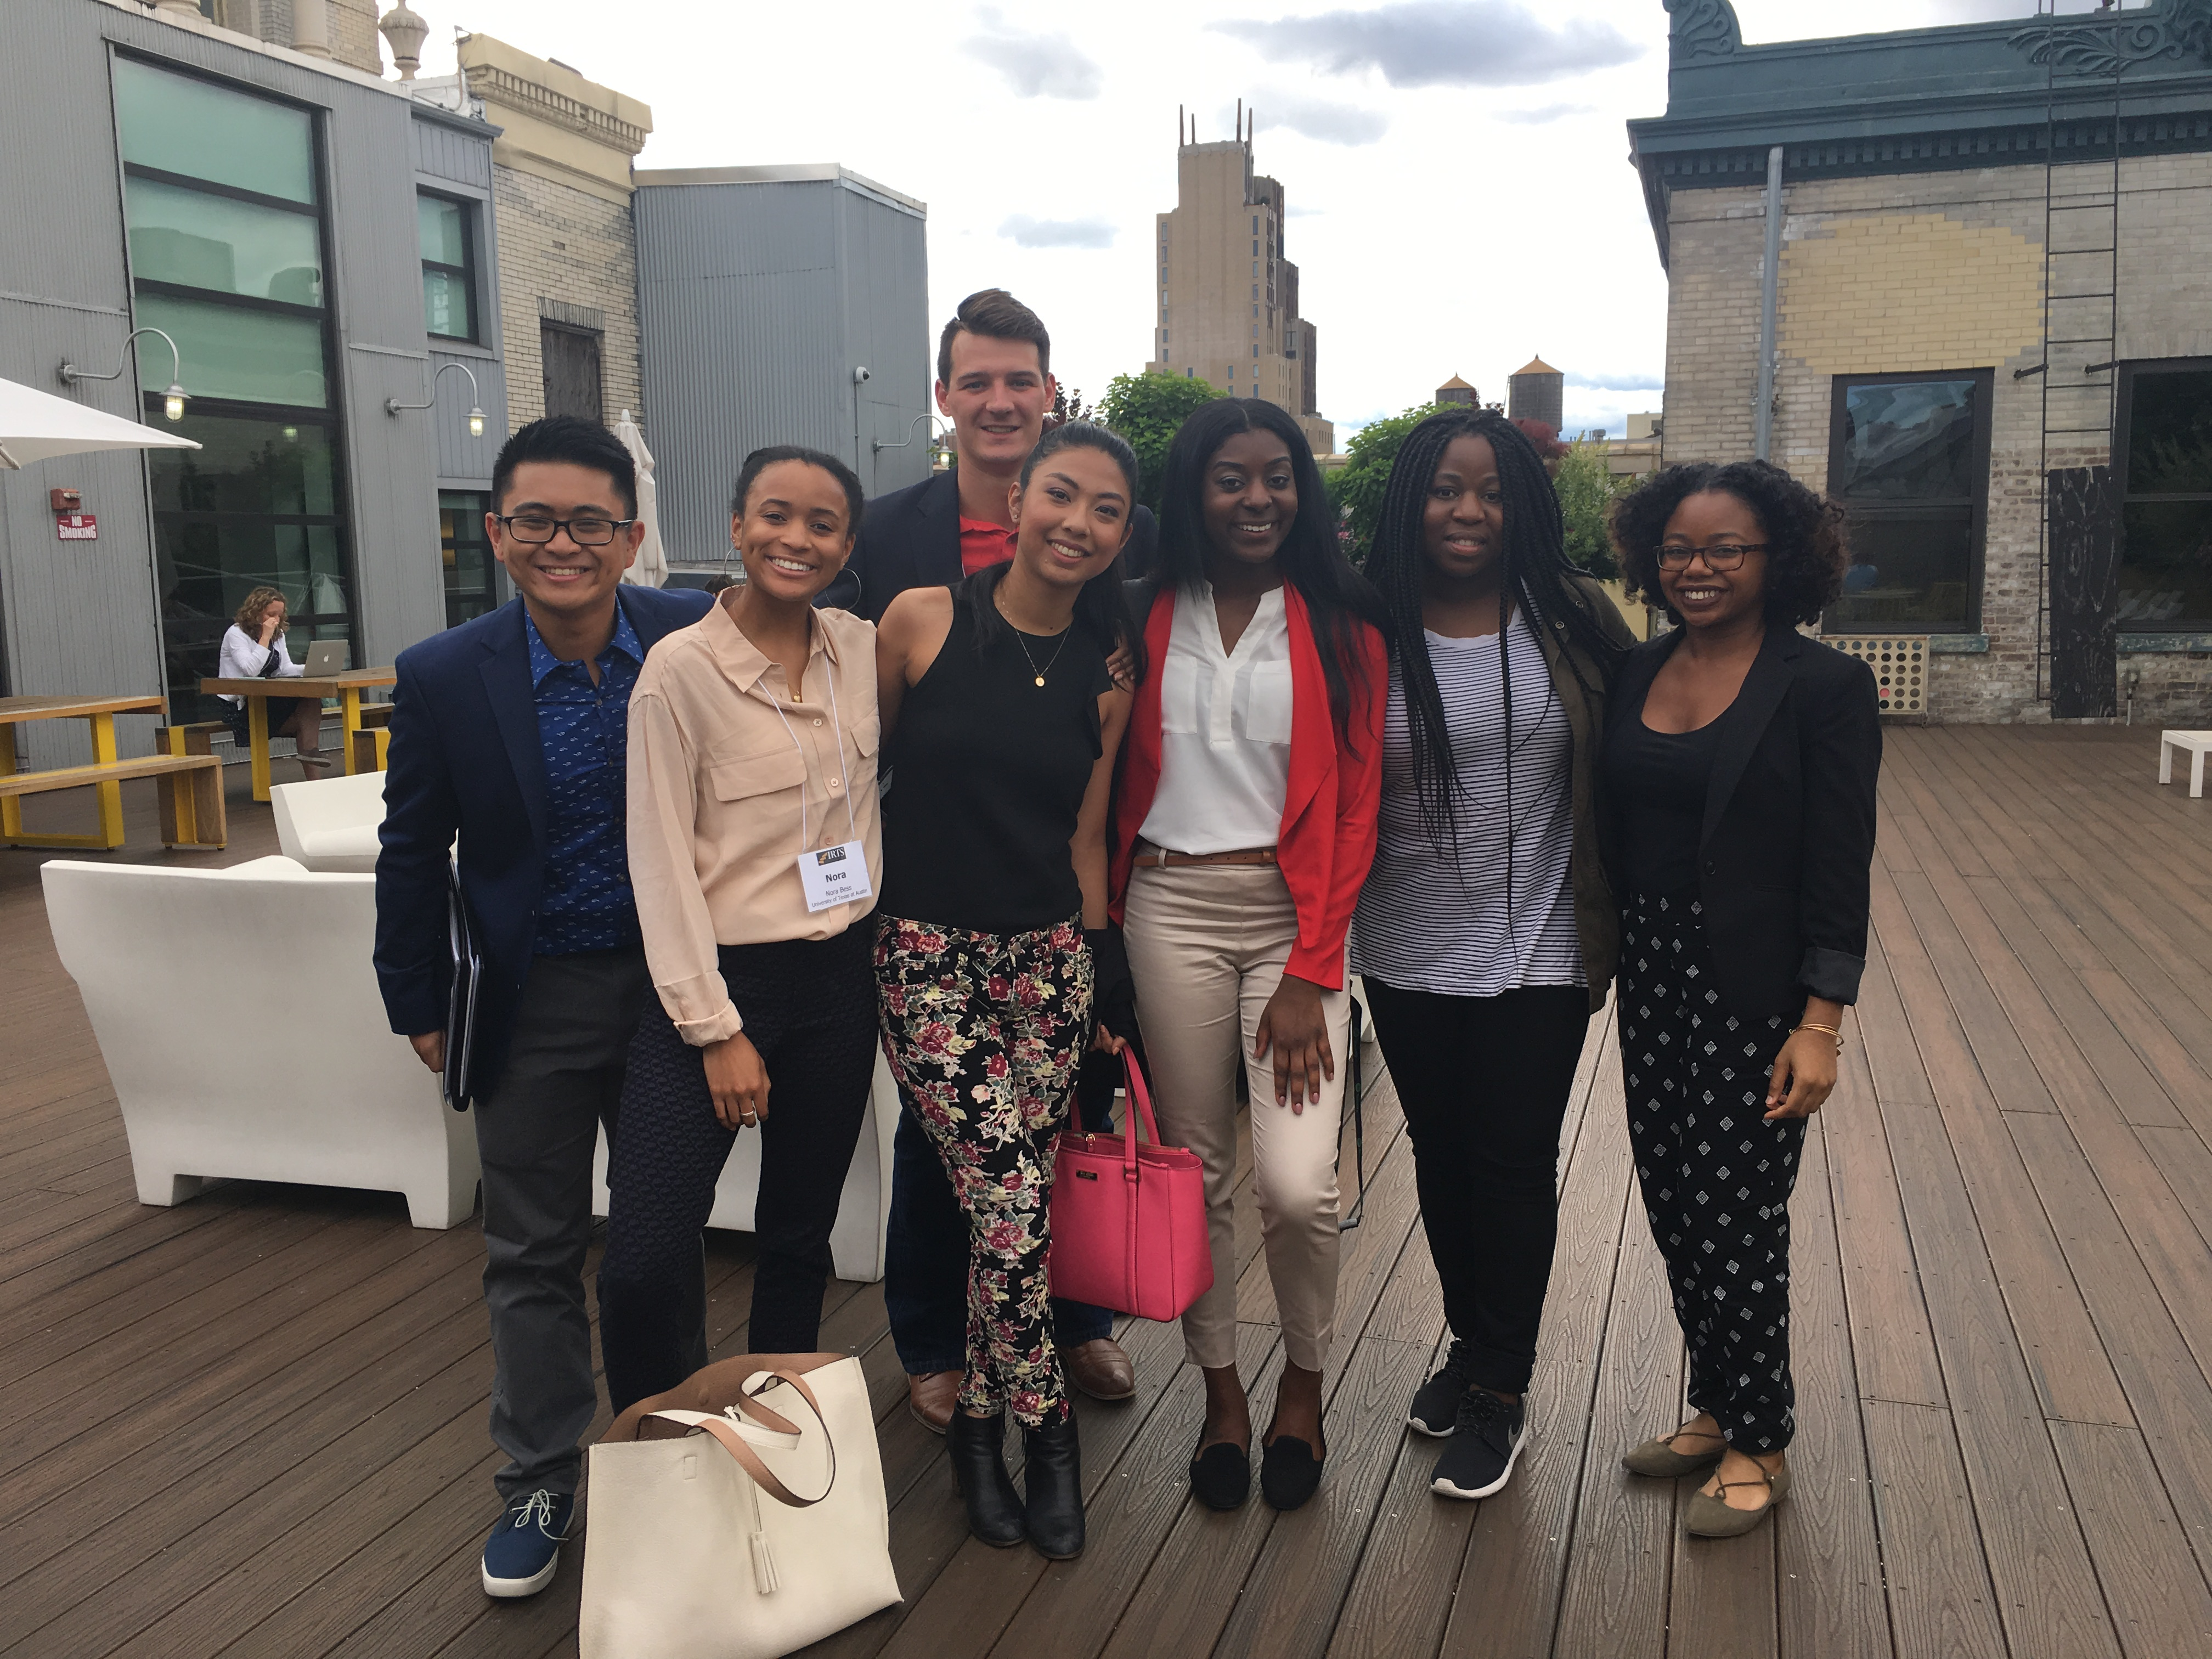 2017 IRTS Summer Fellows posing on the Spotify rooftop with 2013 IRTS alum, Tolu Ayeni